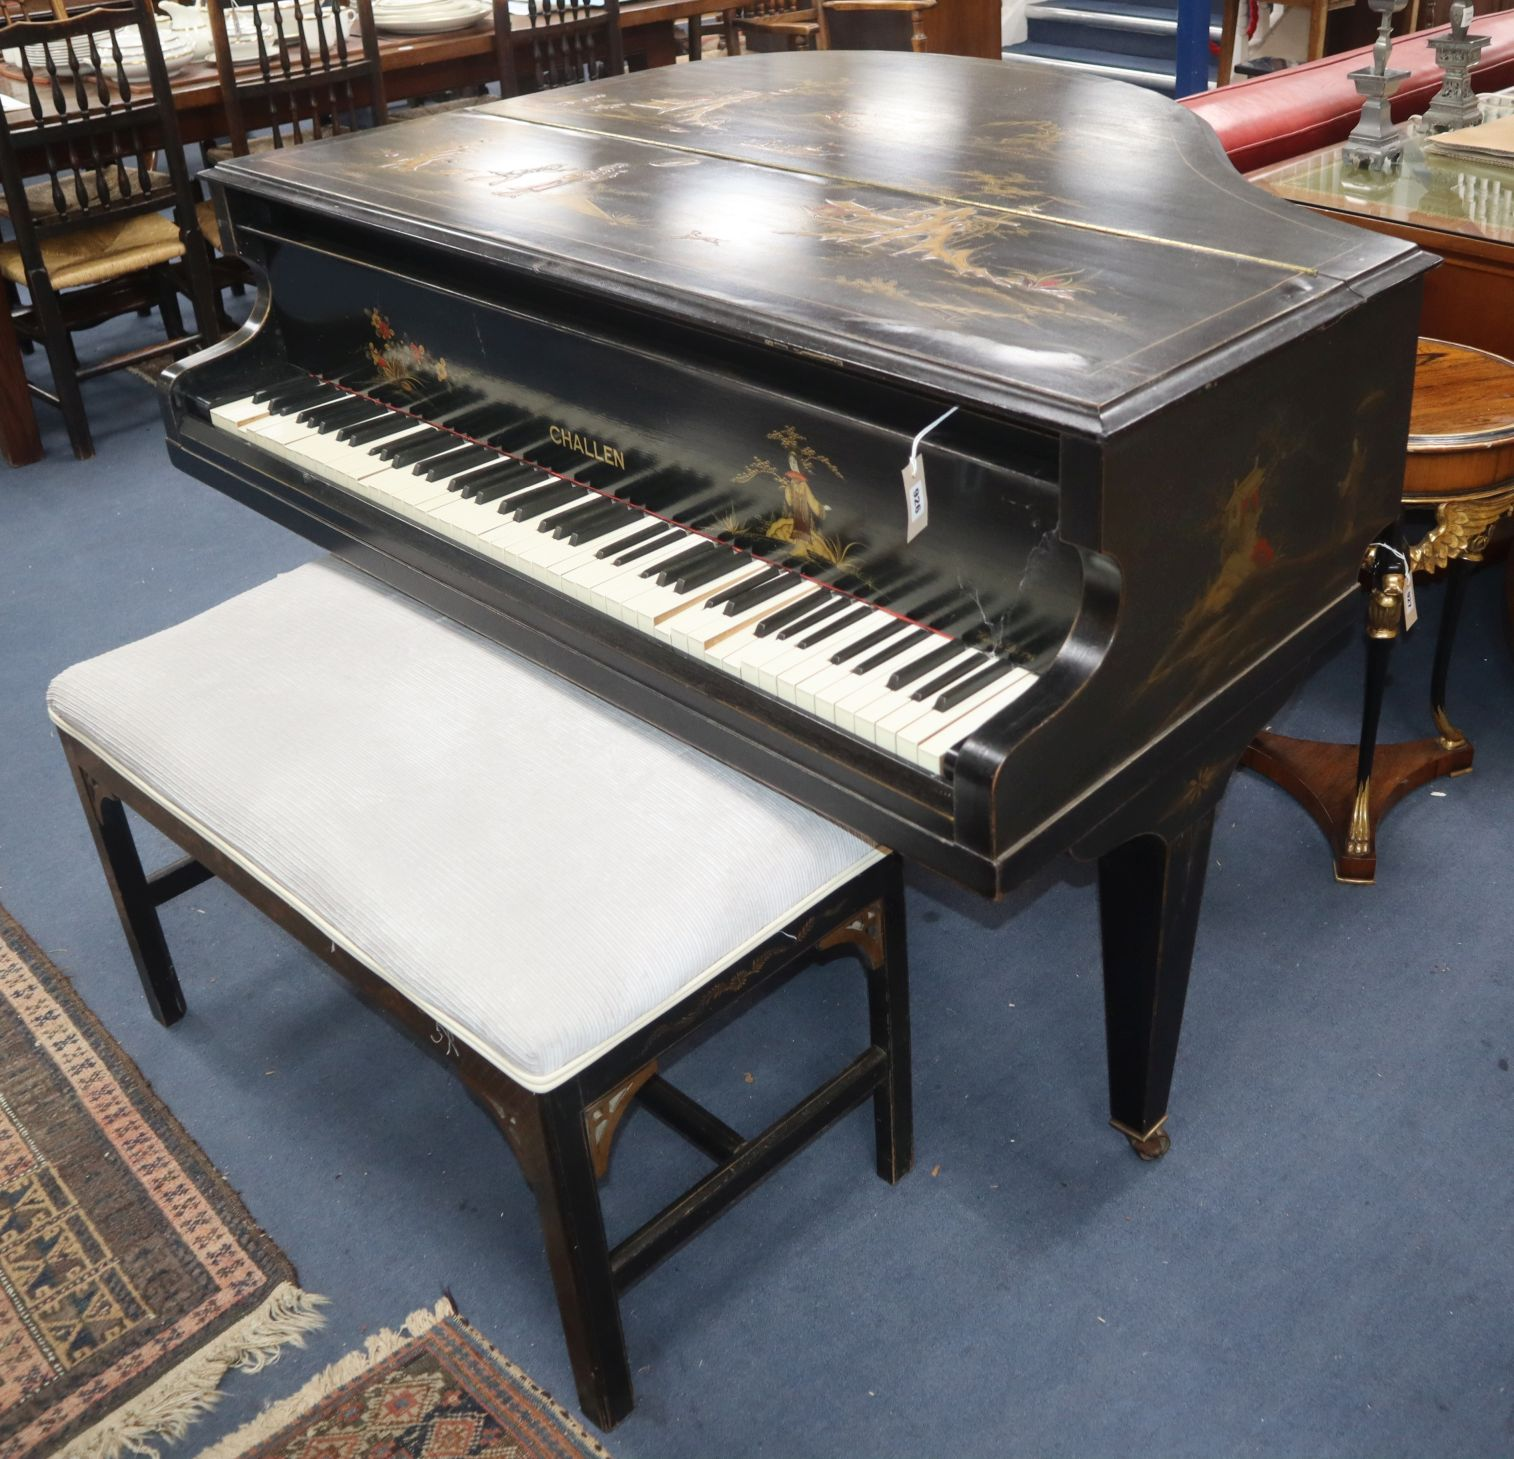 Lot 926 - An early 20th century Challen chinoiserie lacquer baby grand piano and duet stool